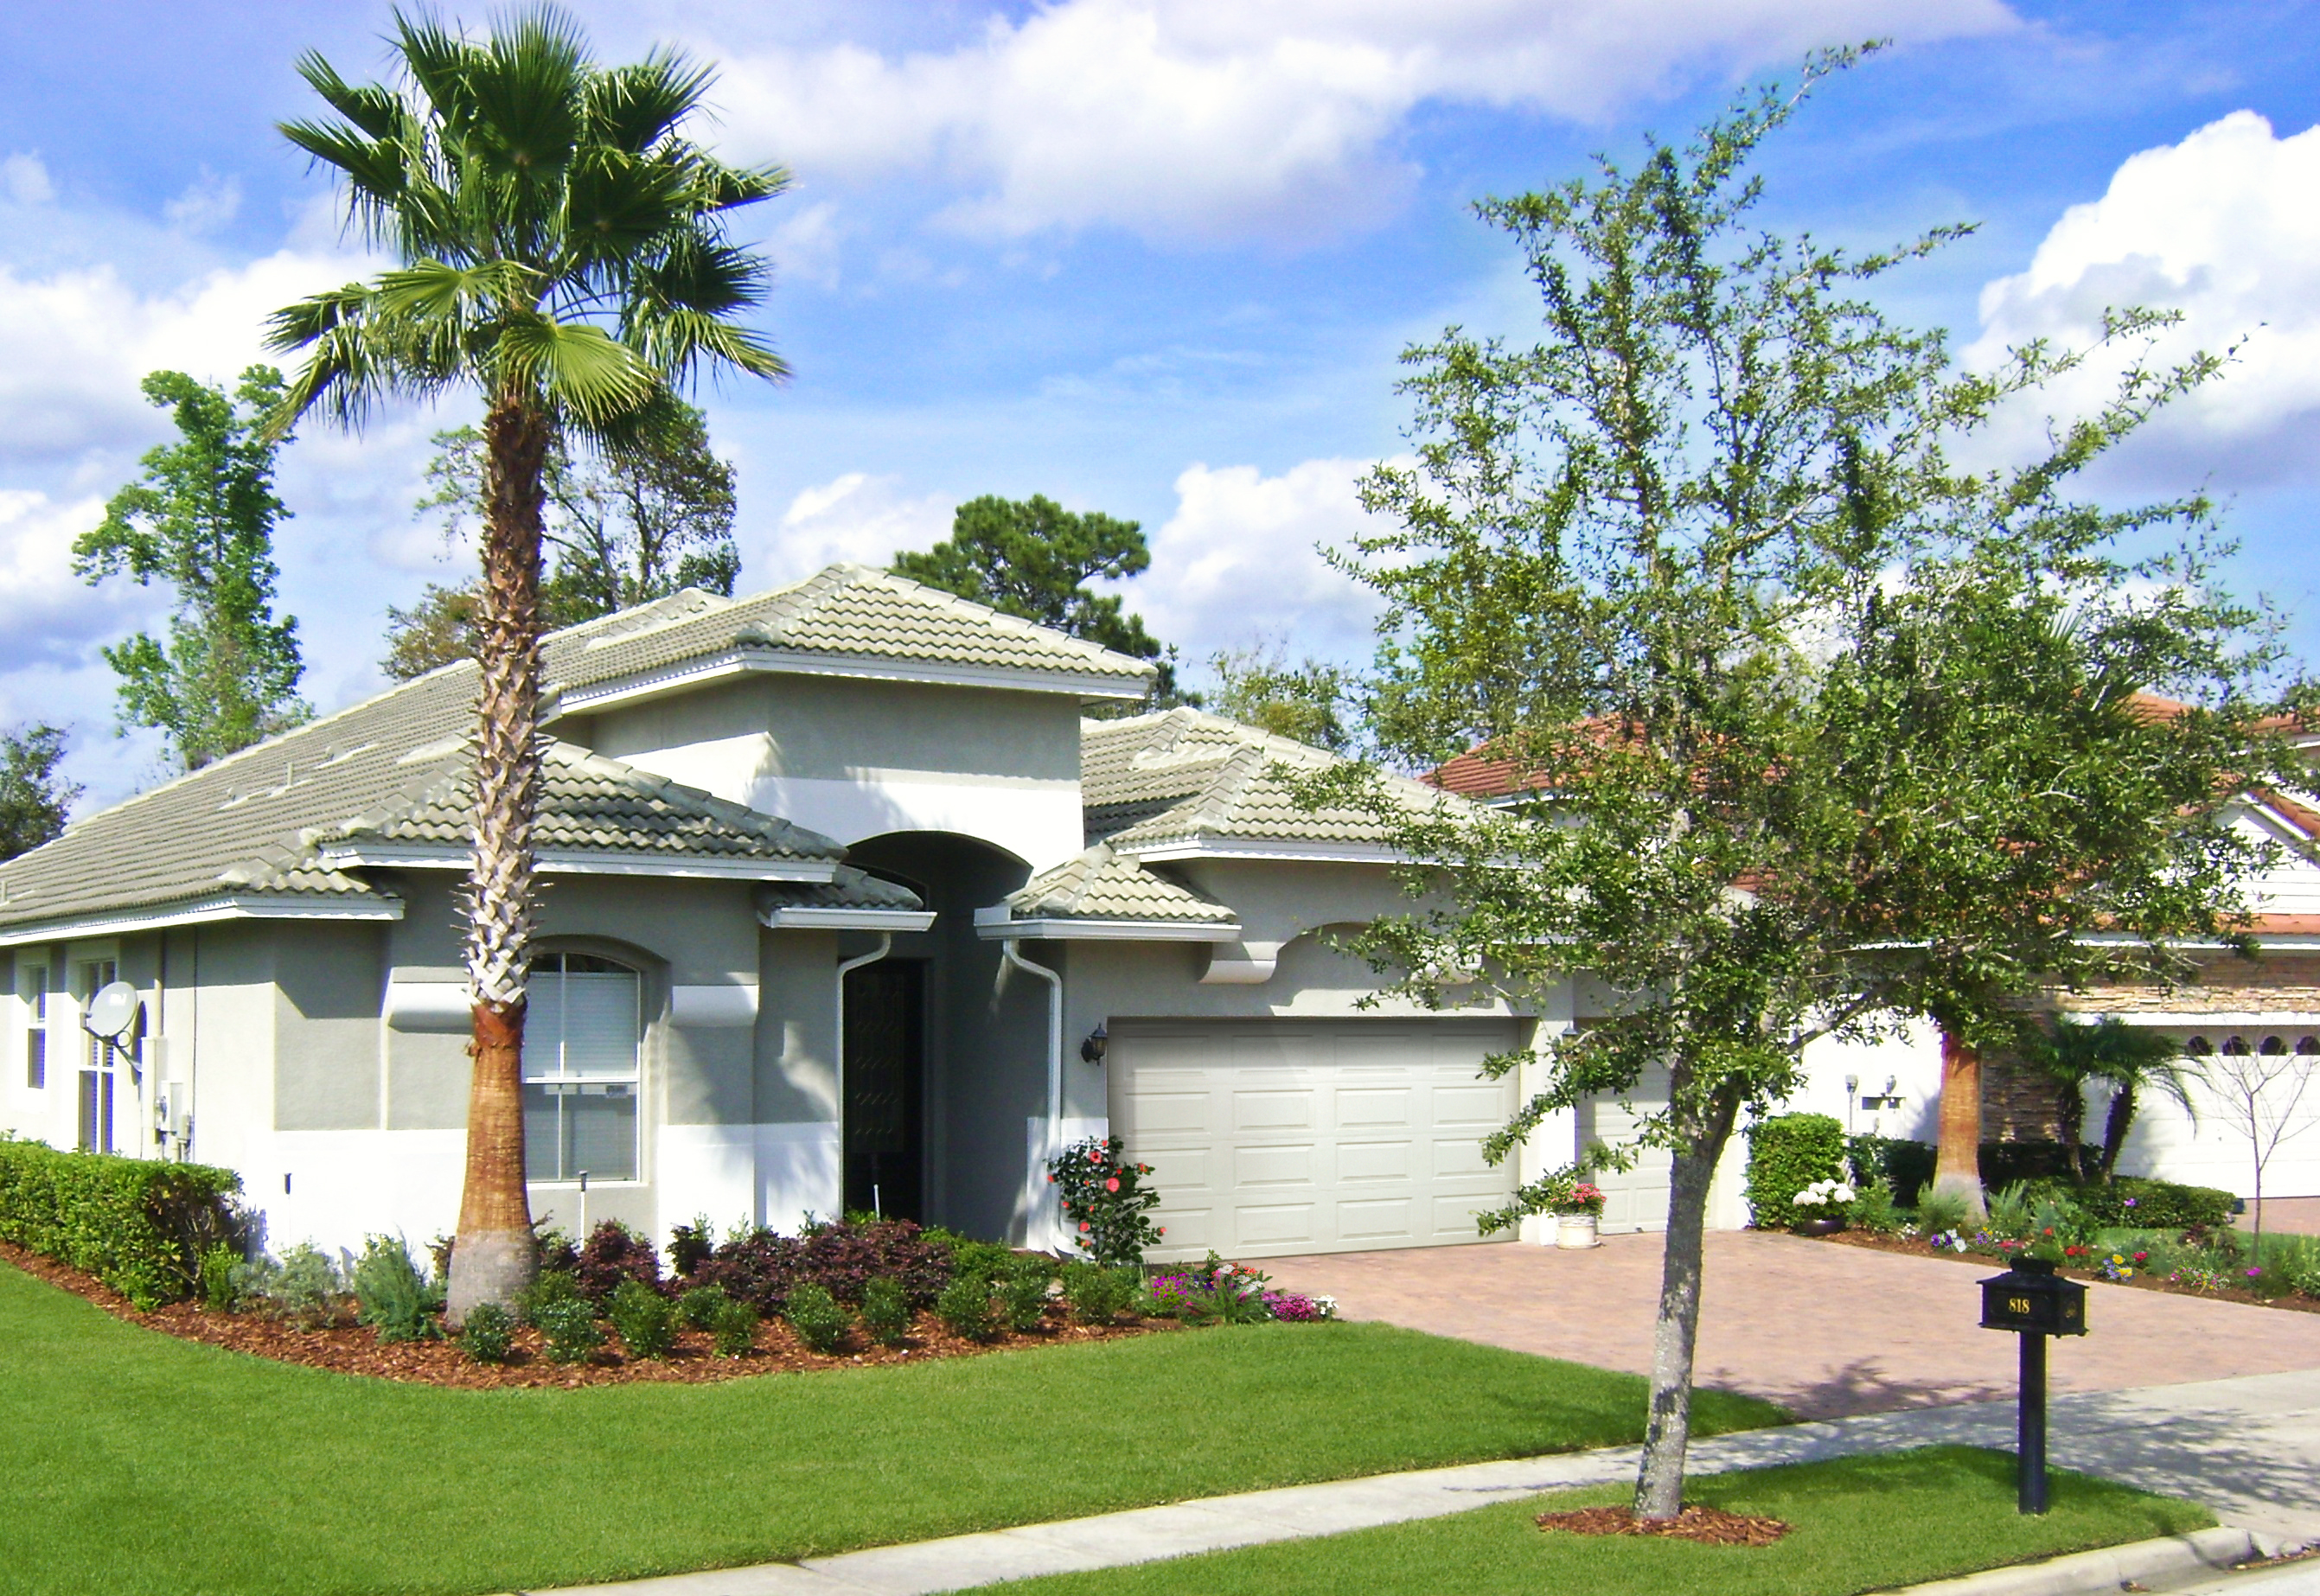 Orlando Landscape Design Ideas and Free Estimate